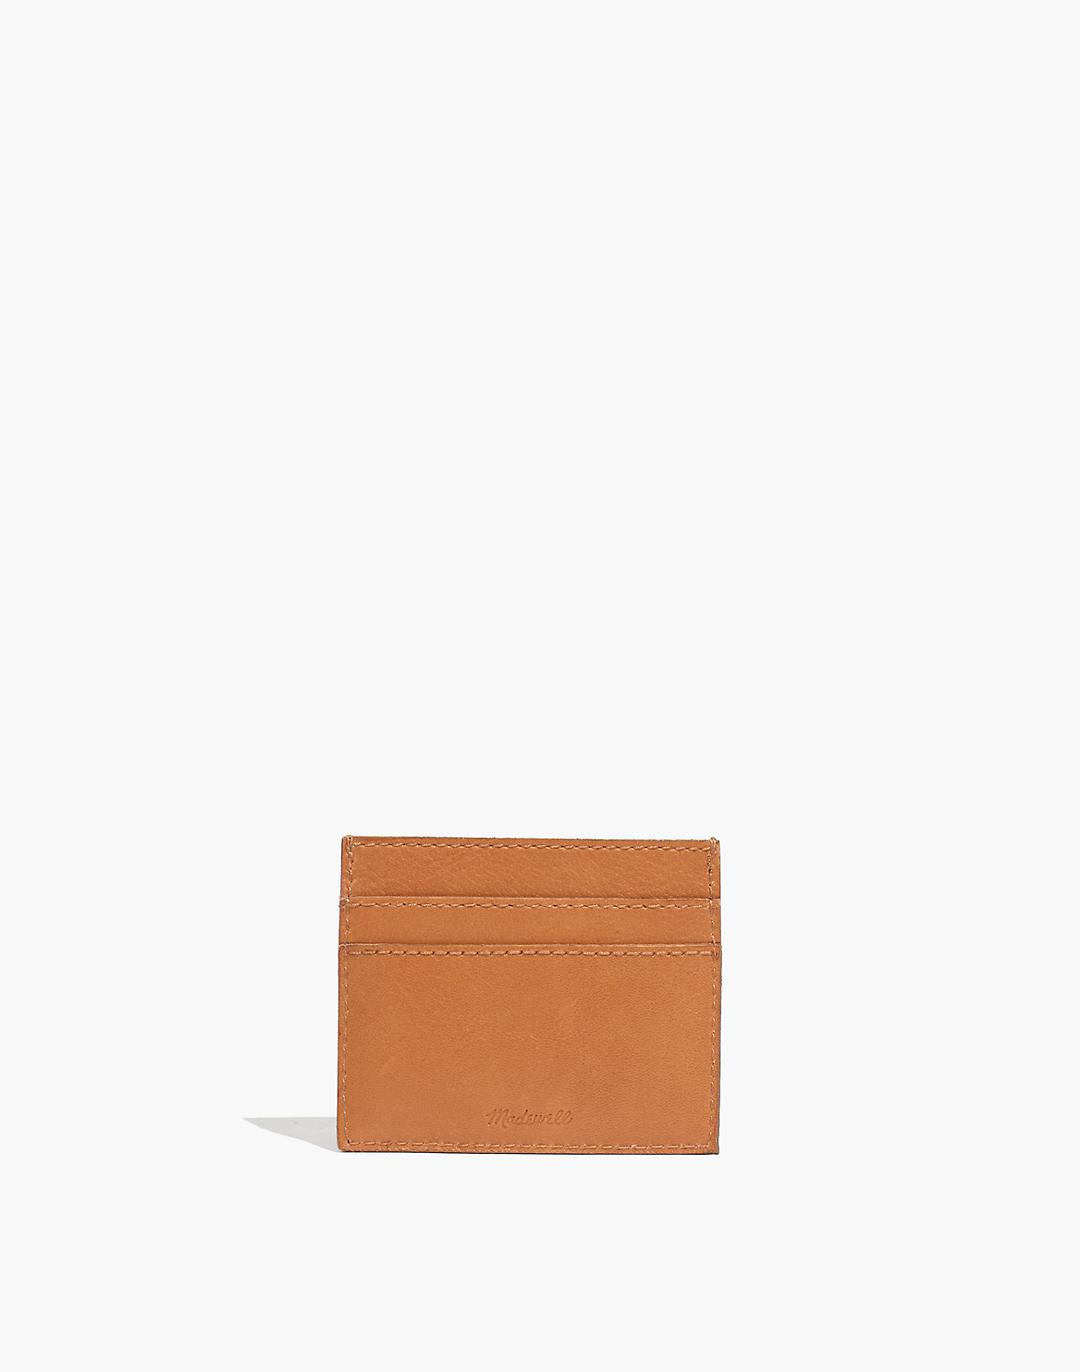 The Leather Card Case: Striped Edition